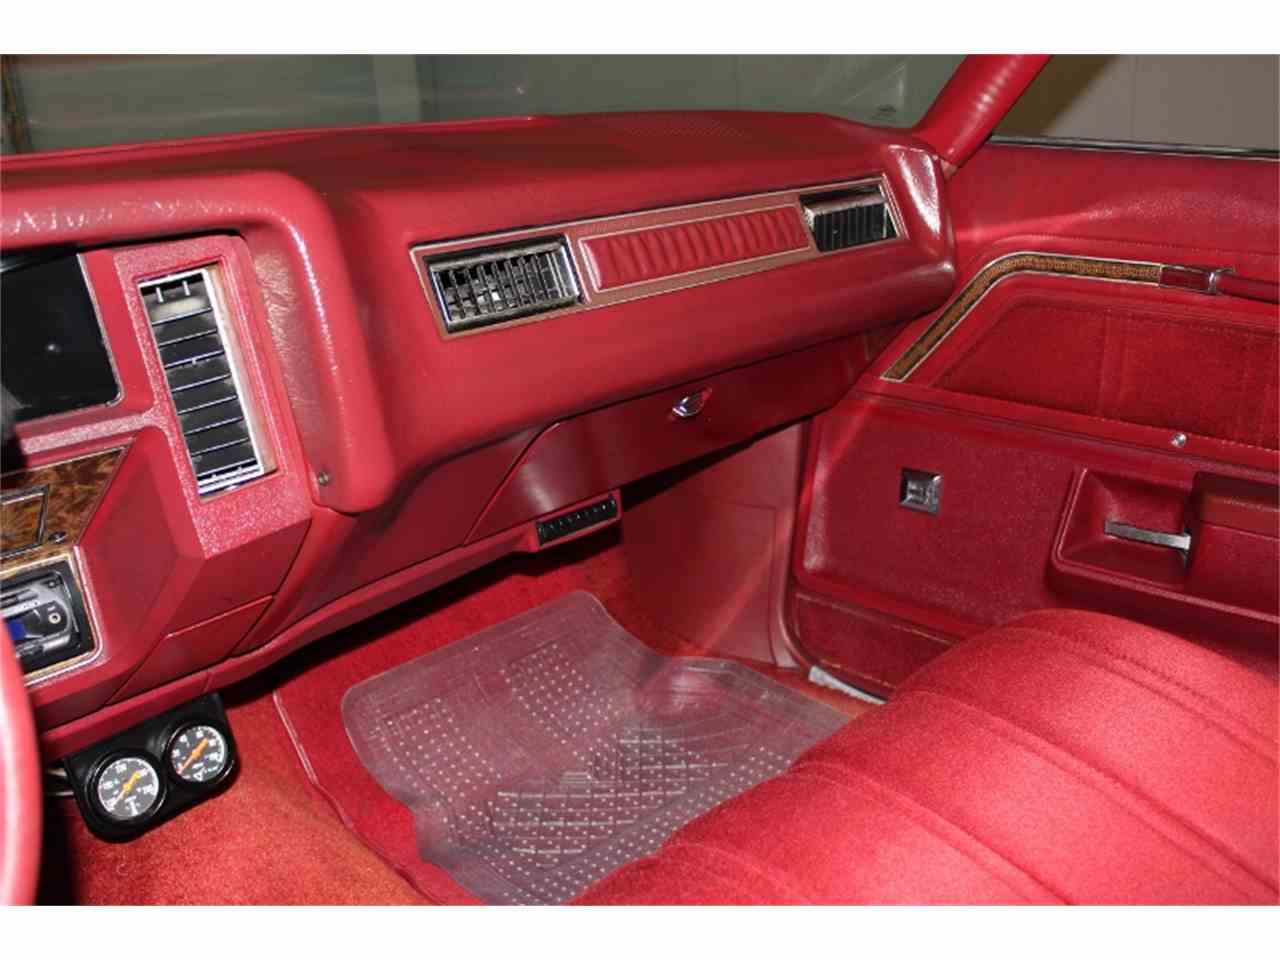 Large Picture of '74 Caprice located in North Carolina Offered by East Coast Classic Cars - JUO8